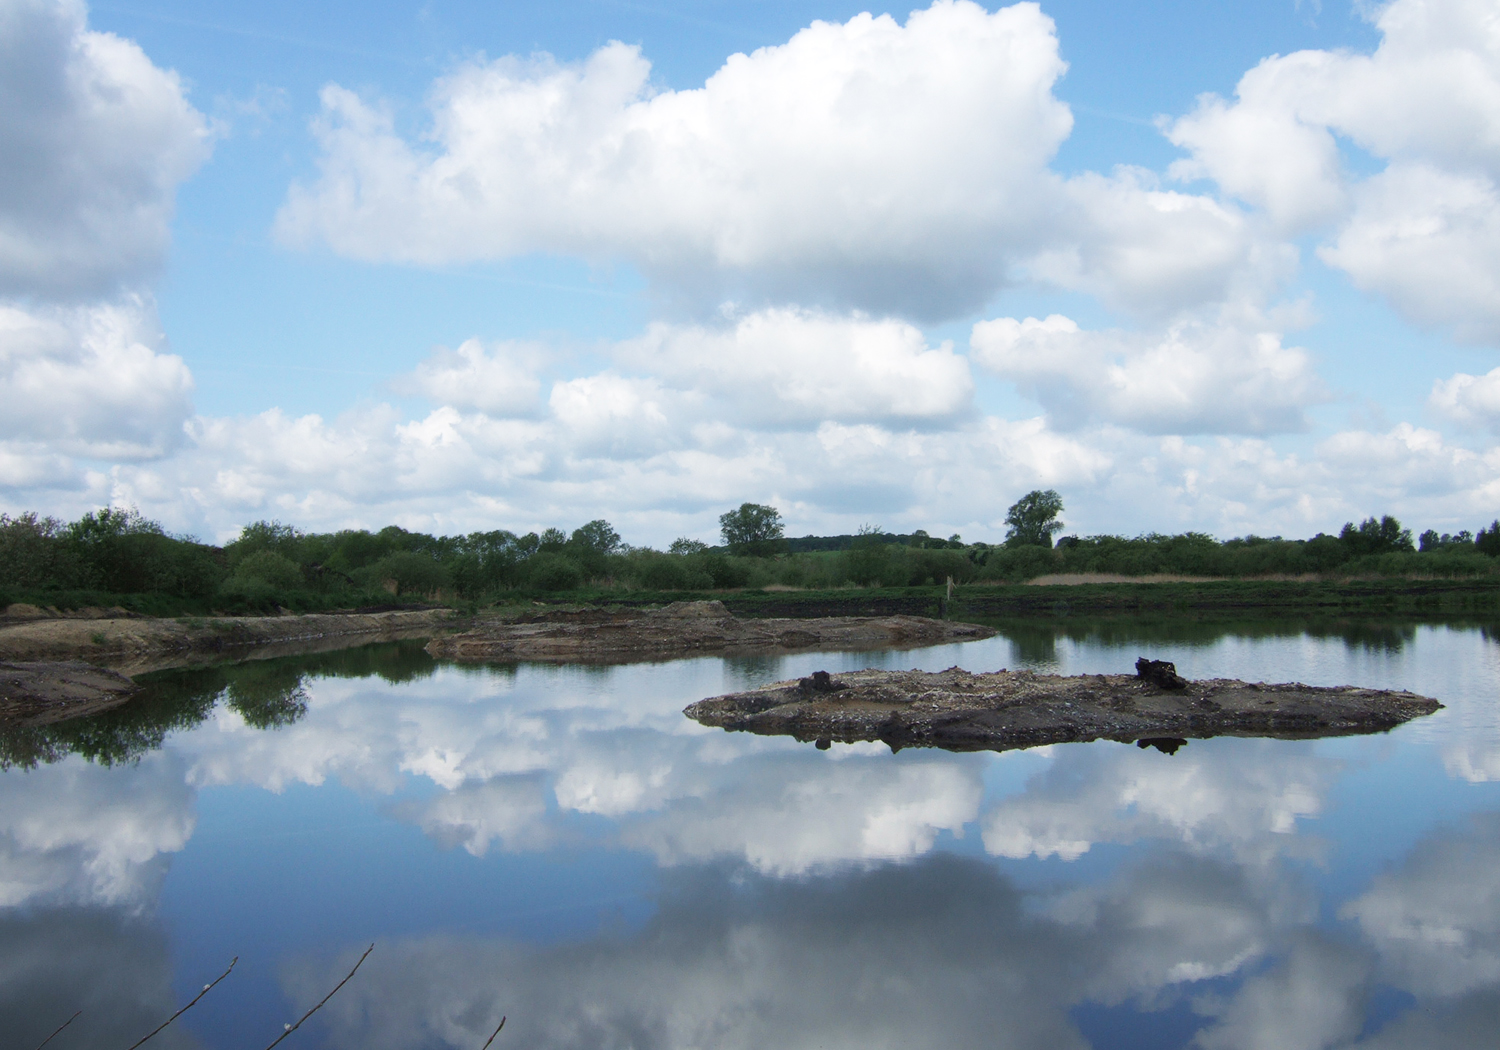 Projects-MineralsWaste-Oxborough-Waterbody2-1500x1050